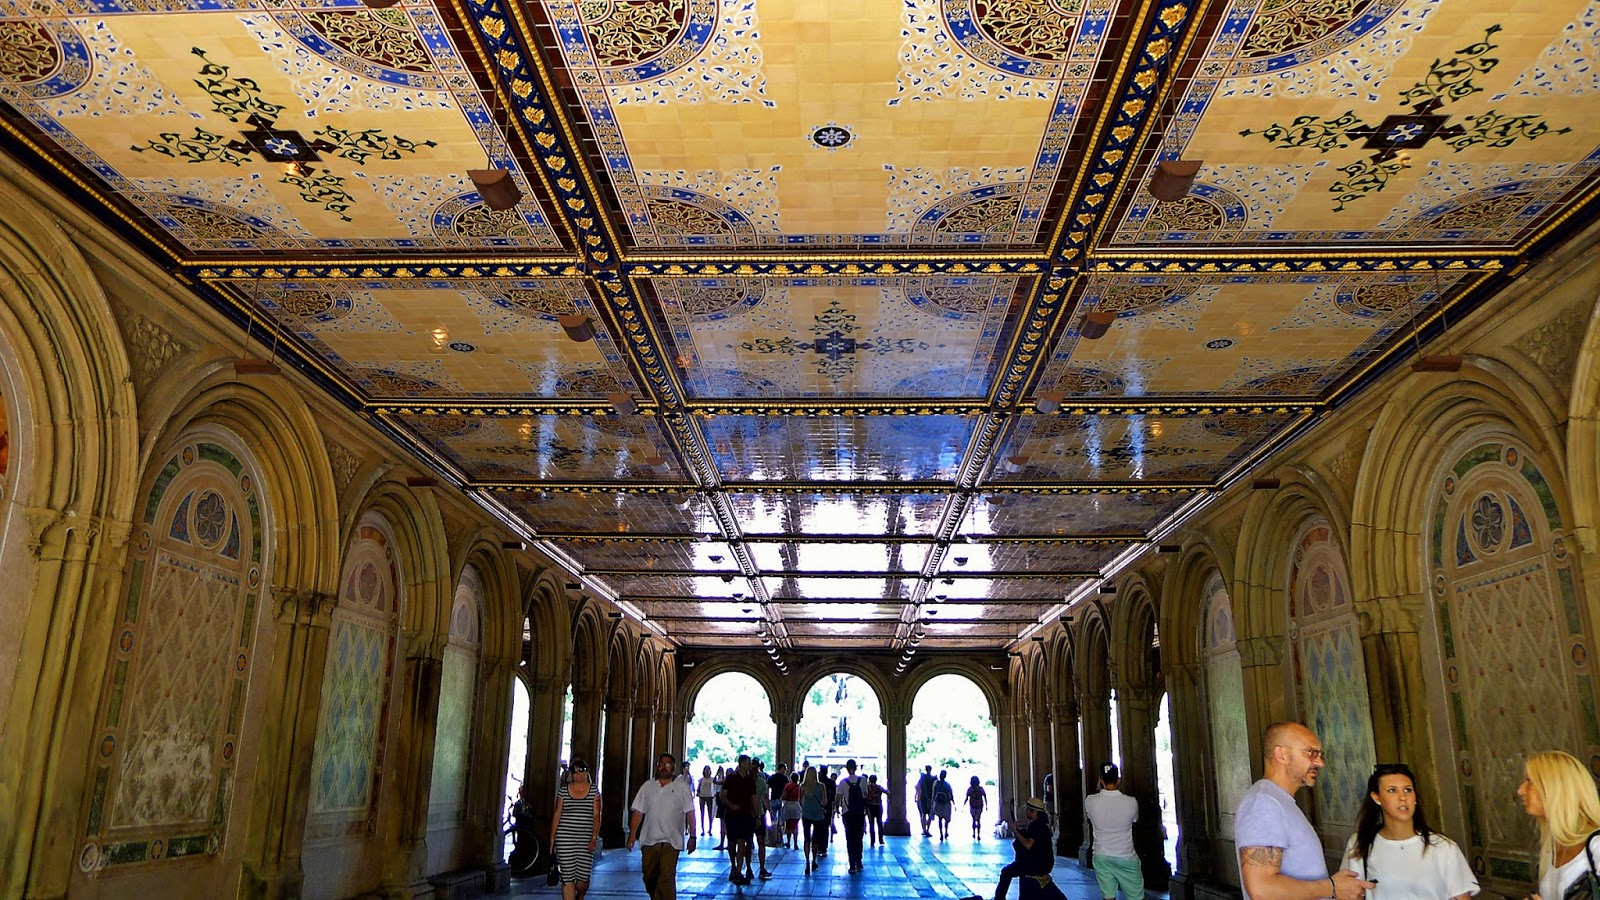 architectural tiles, glass and ornamentation in new york: the